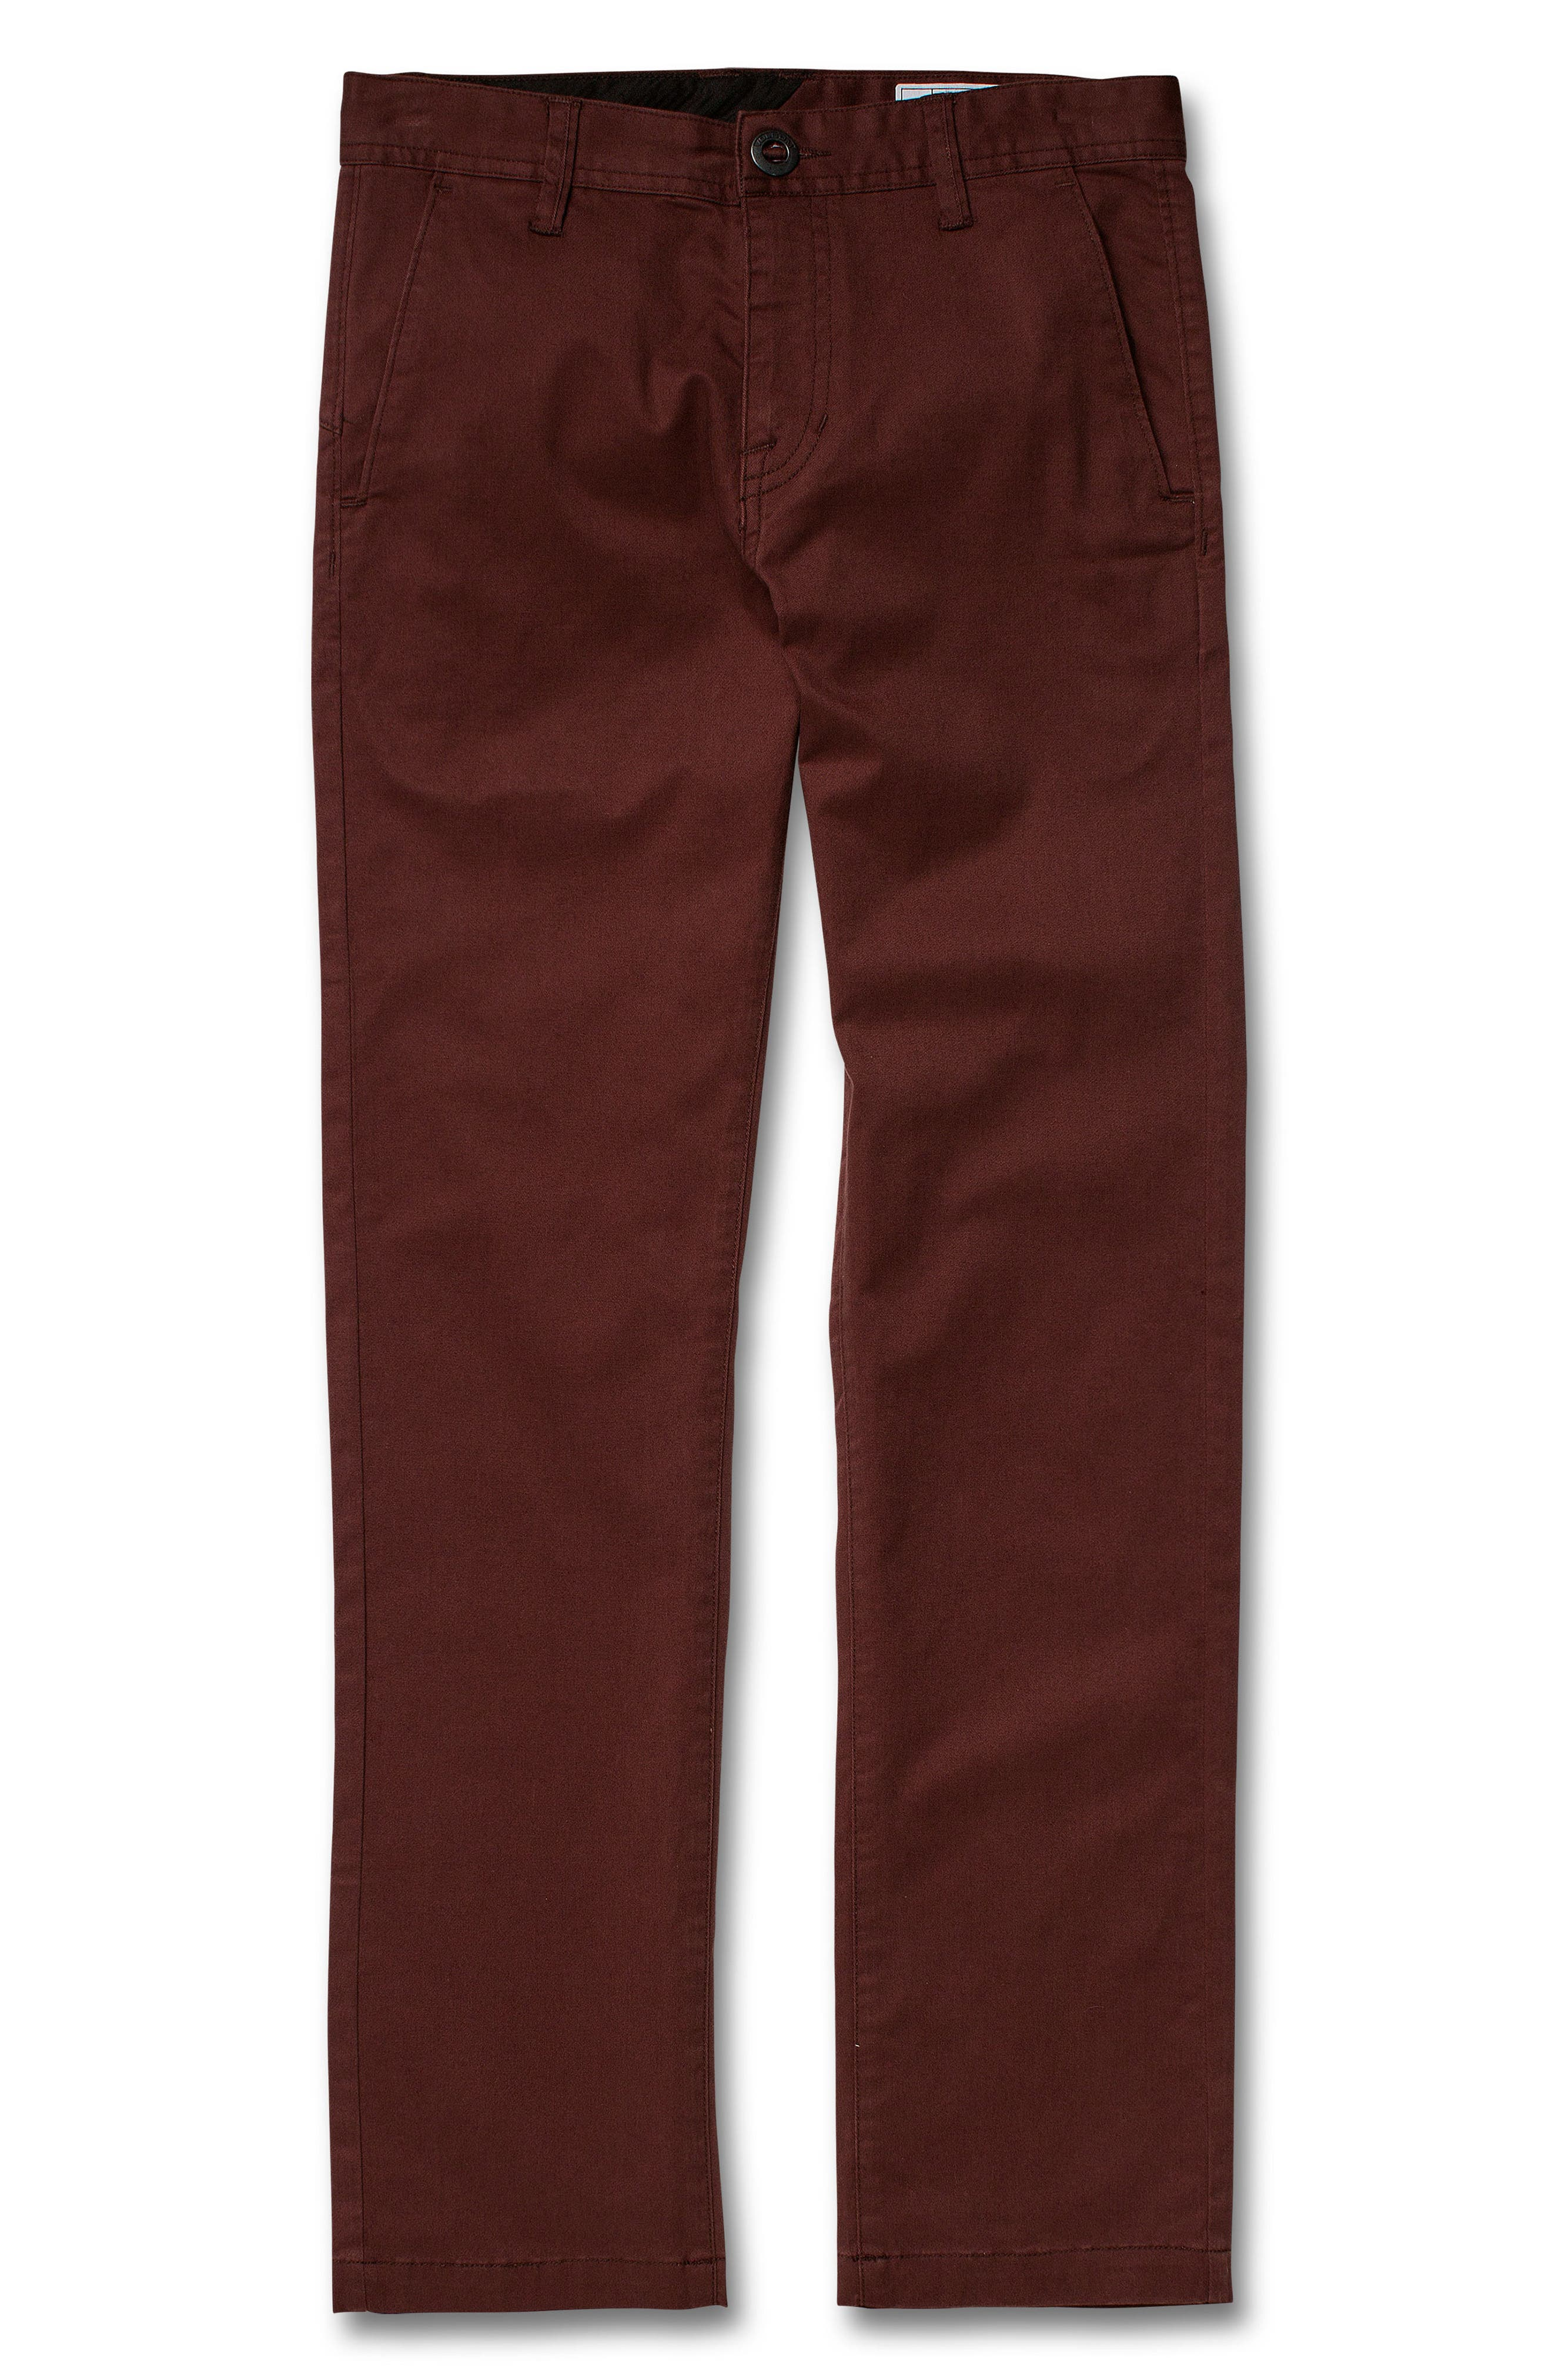 VOLCOM Slim Fit Stretch Chinos, Main, color, BROWN